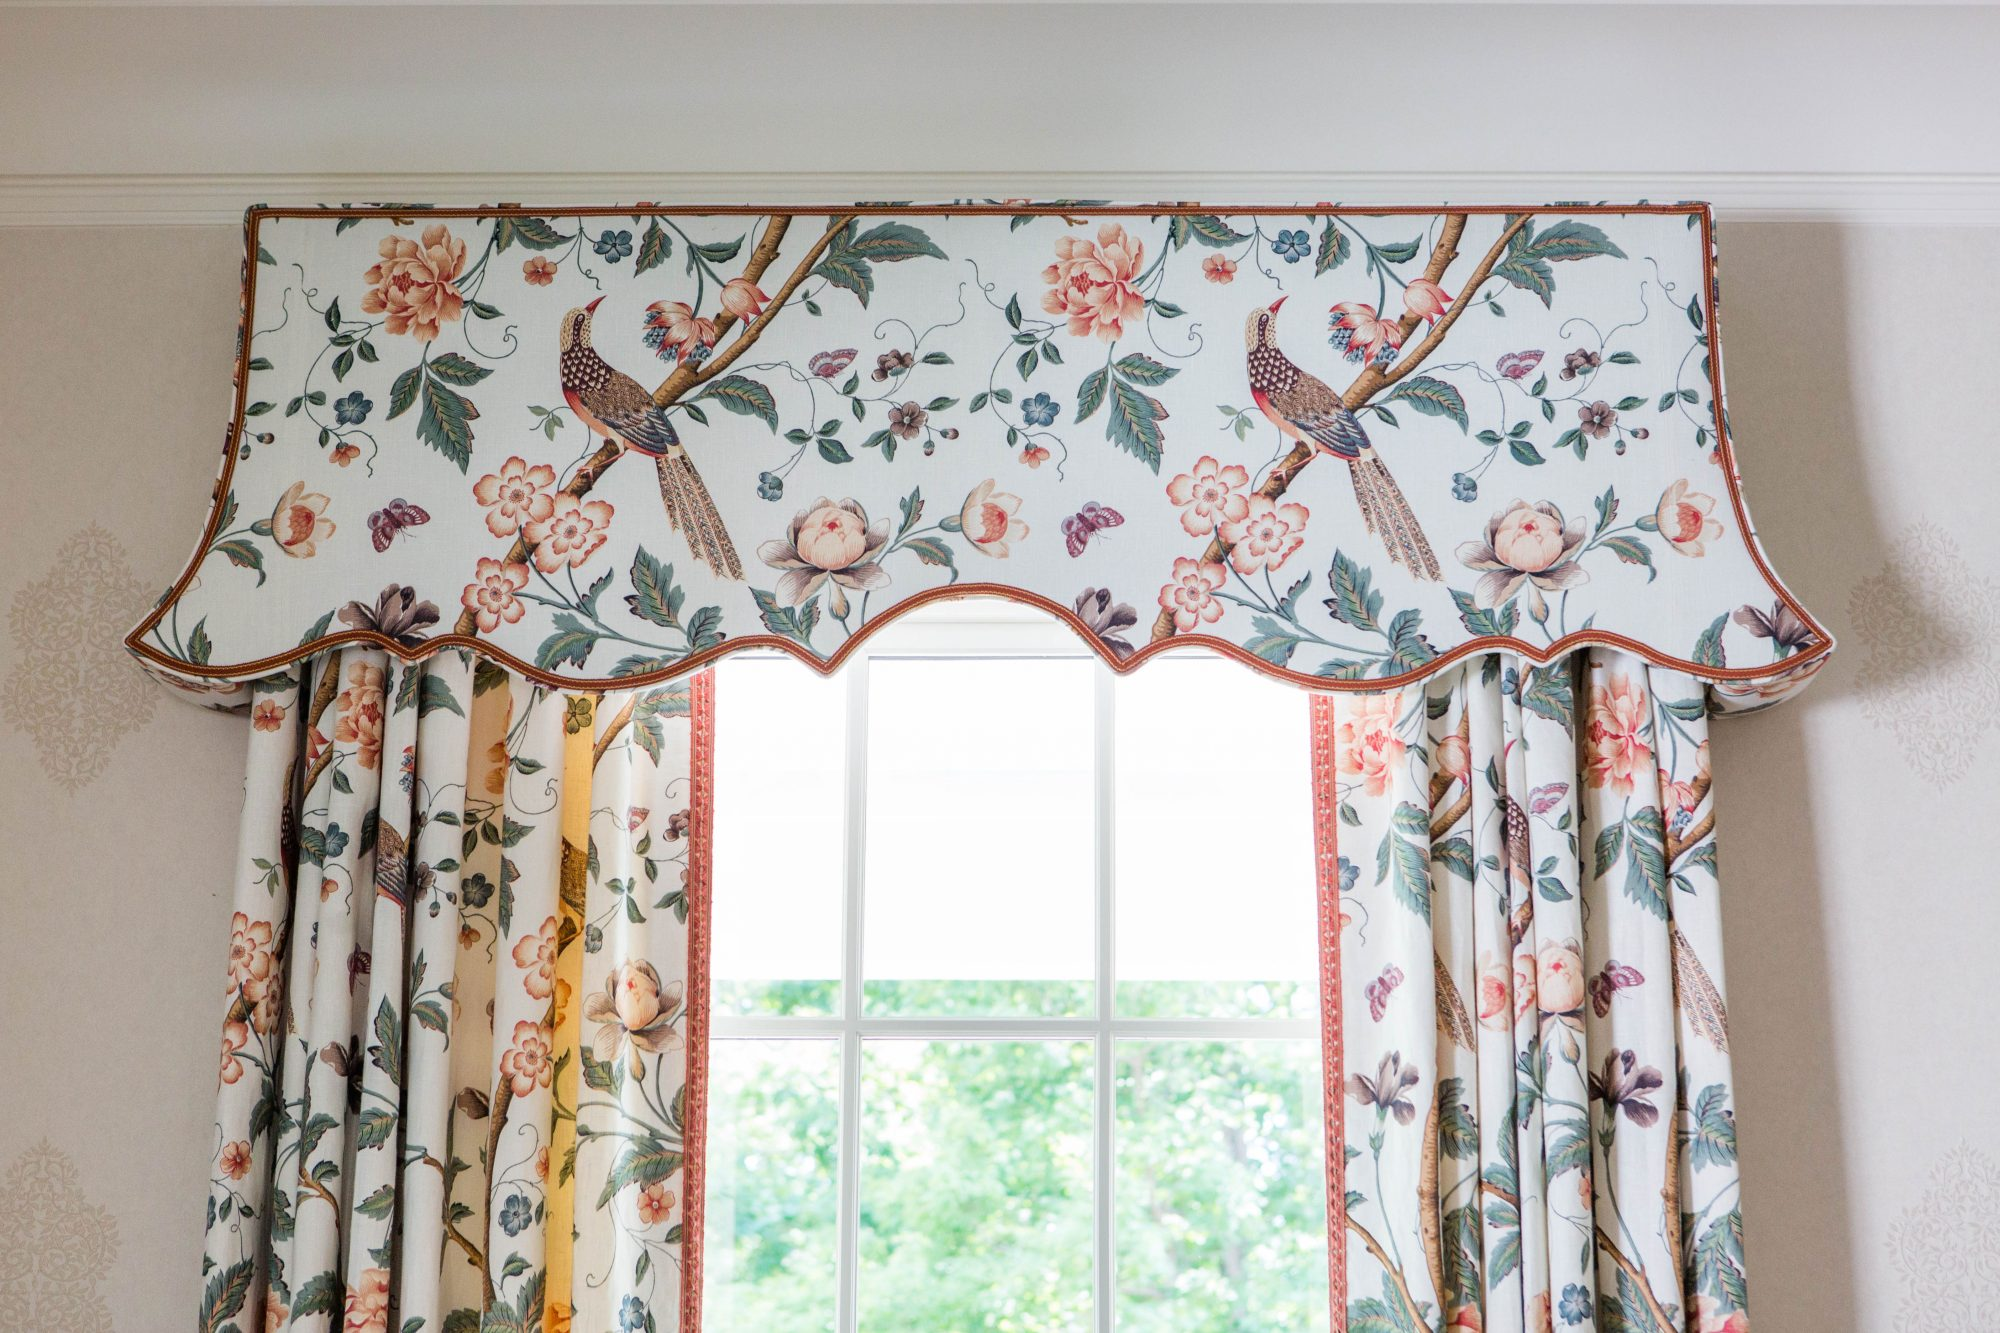 Dining Room Valance and Curtains